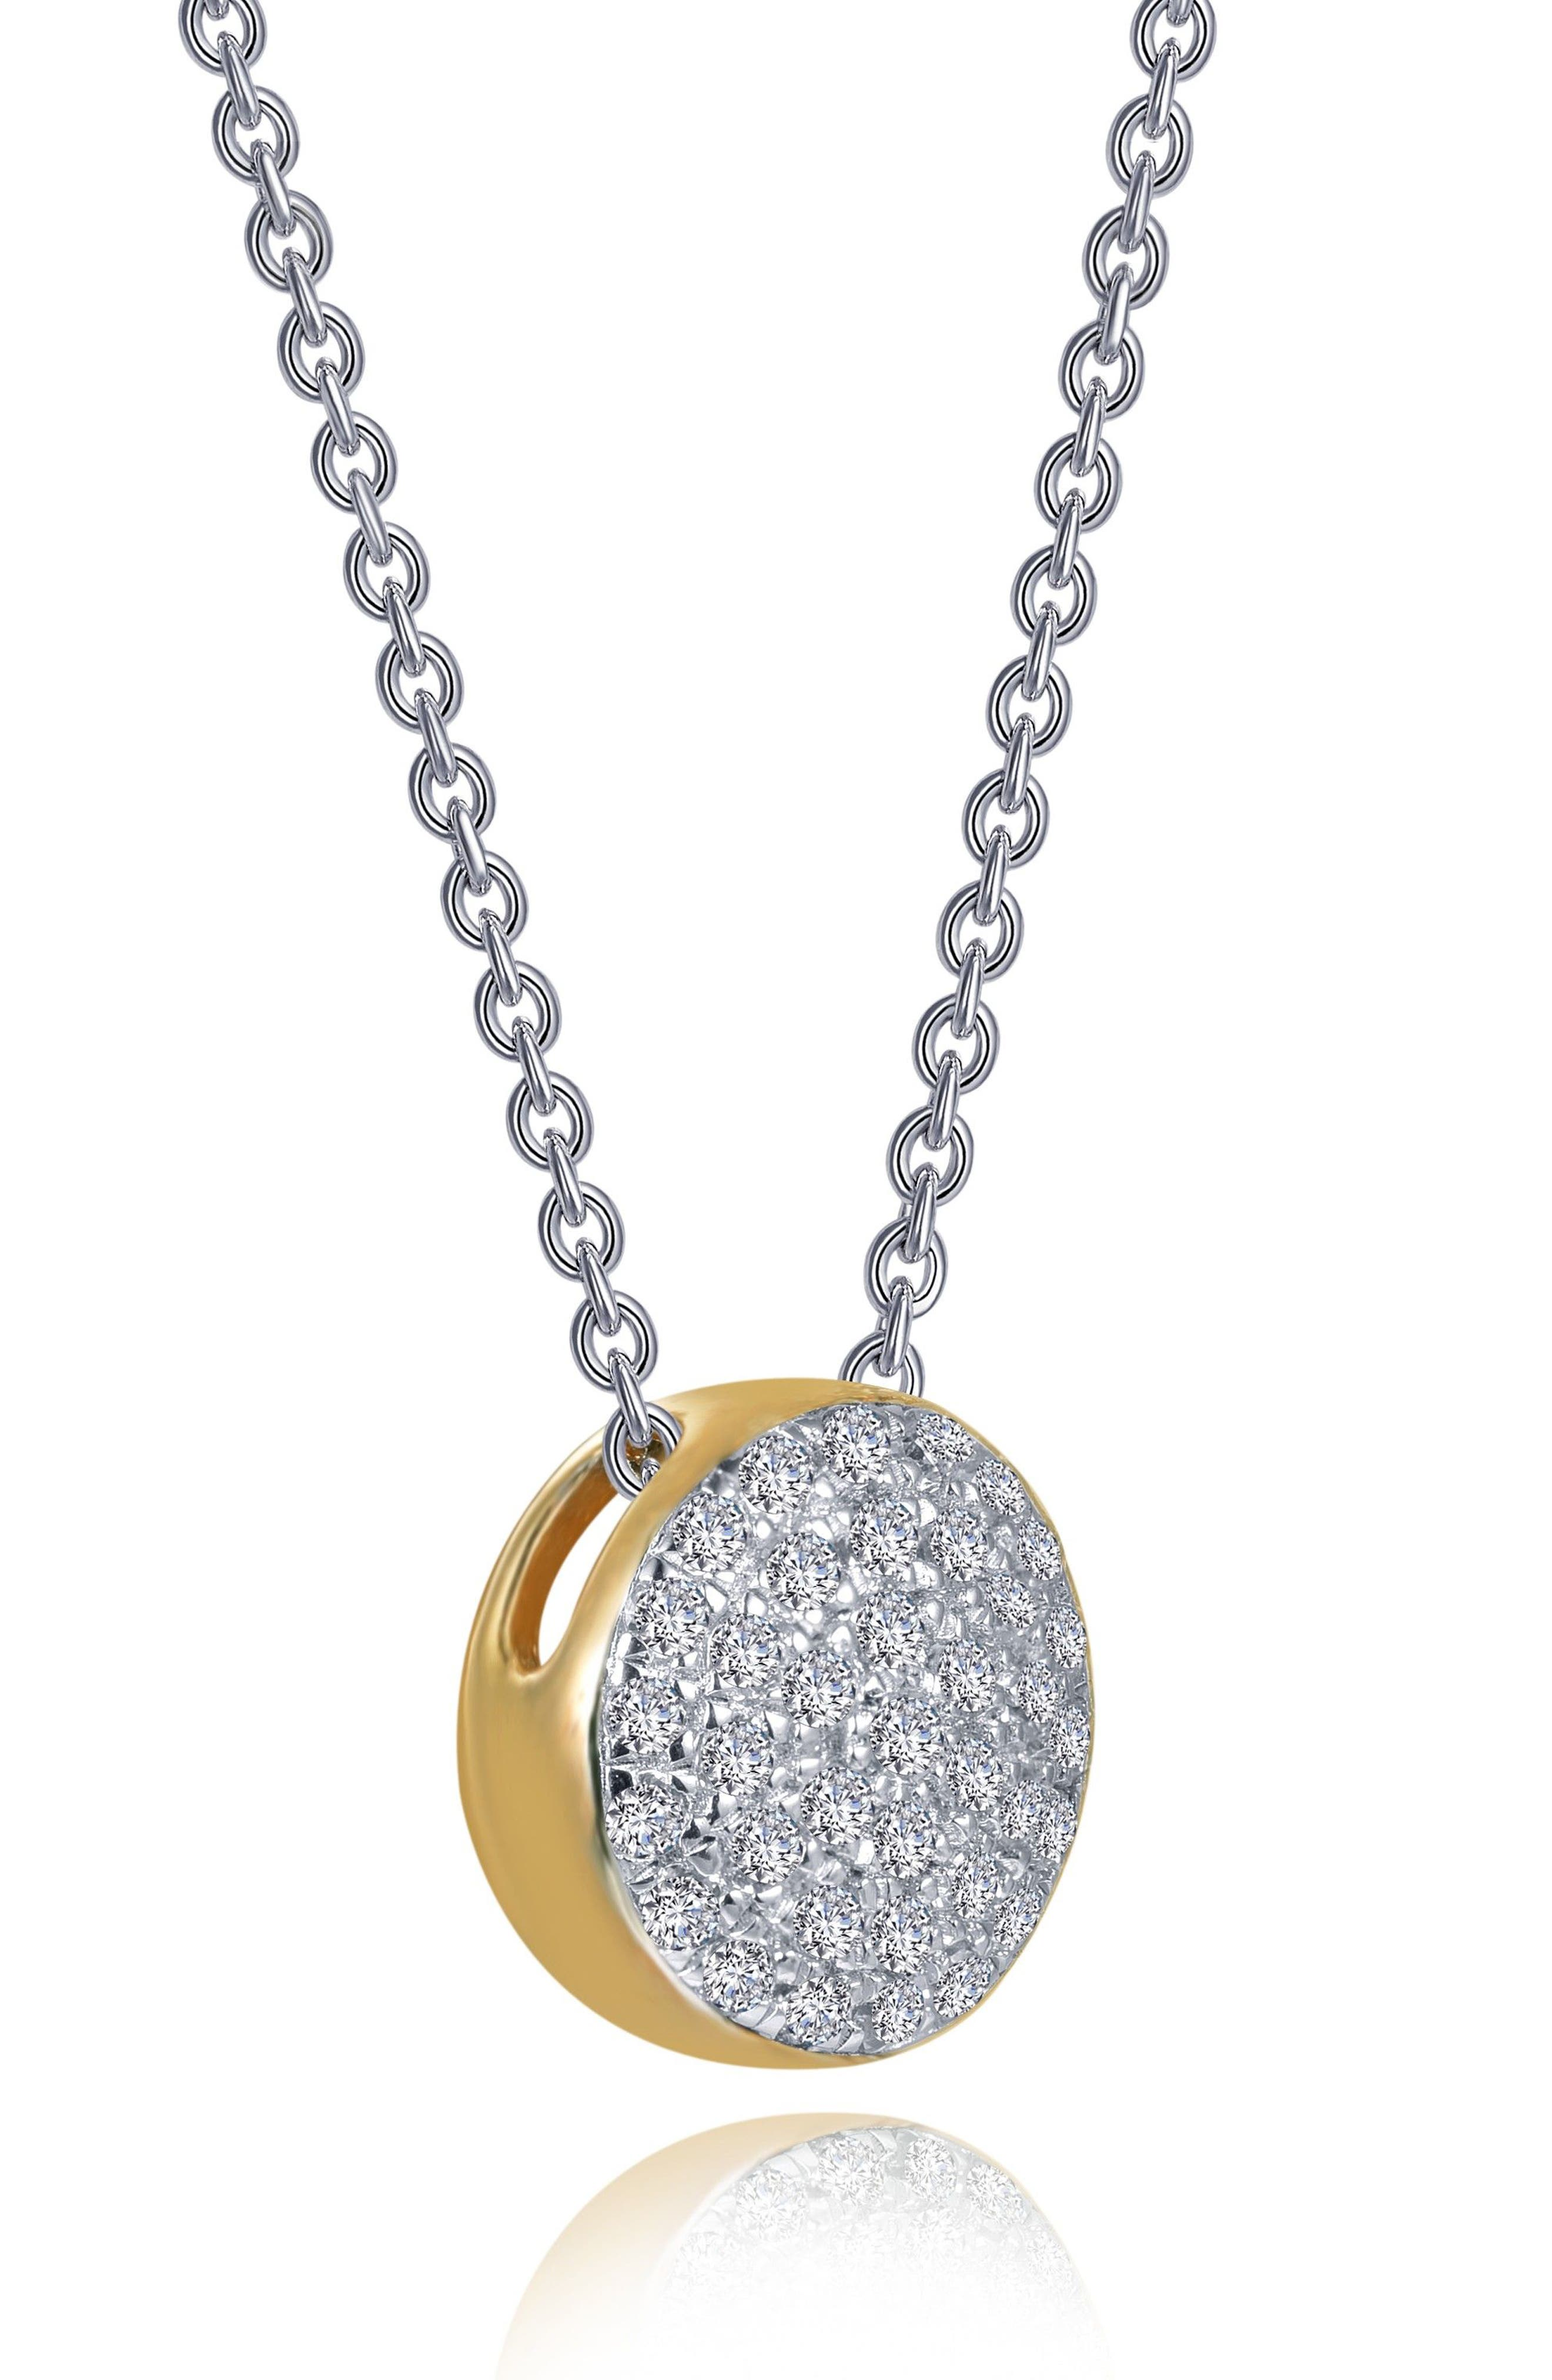 Two-Tone Pavé Button Choker Necklace,                         Main,                         color, Silver/ Gold/ Clear